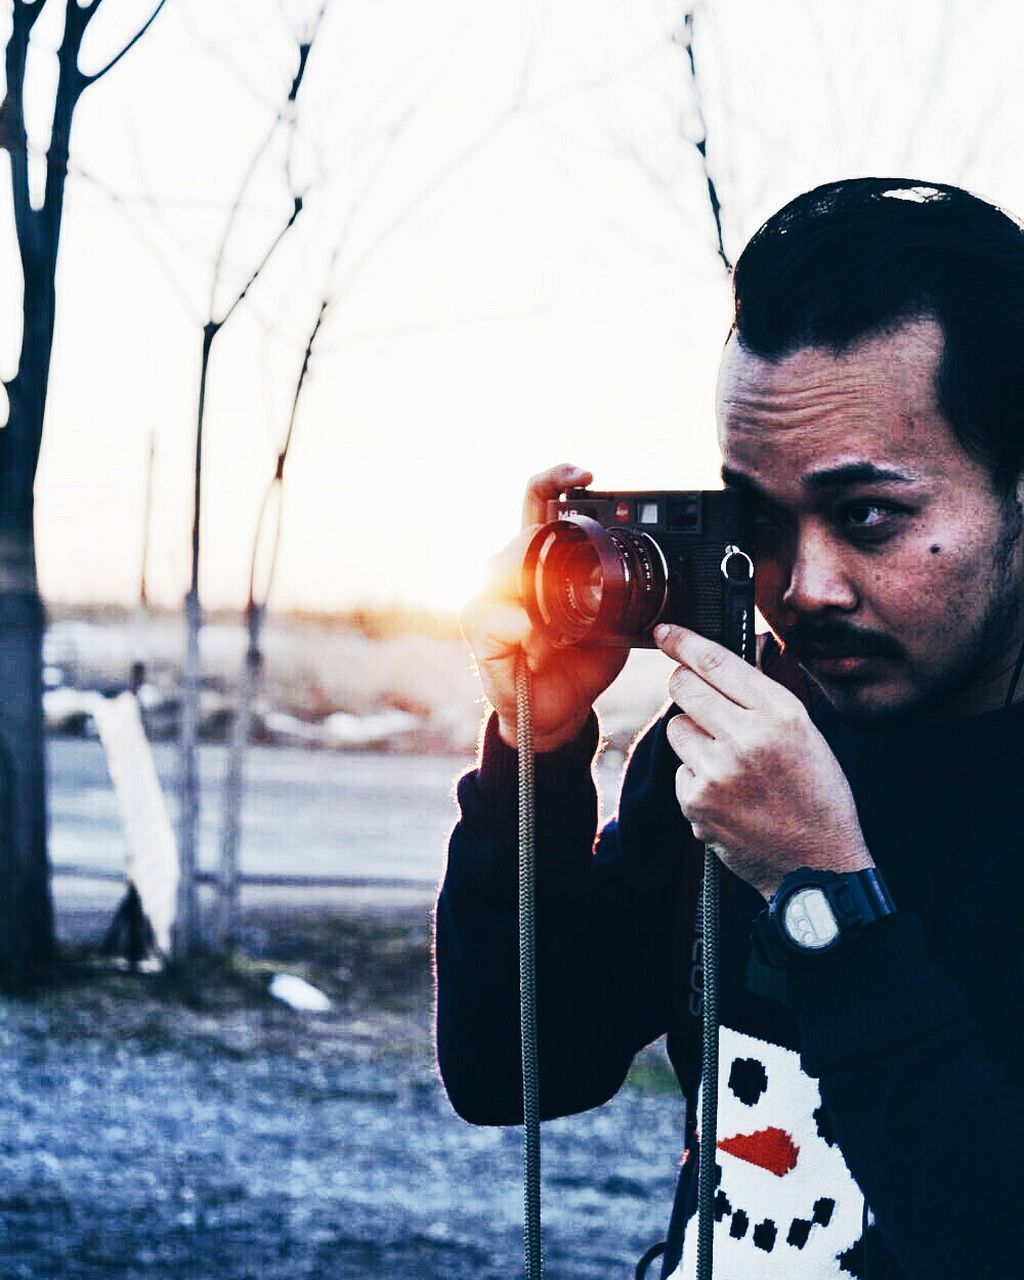 real people, one person, photographing, photography themes, leisure activity, photographer, camera - photographic equipment, holding, digital camera, lifestyles, outdoors, technology, camera, men, day, slr camera, young adult, digital single-lens reflex camera, nature, sky, close-up, people